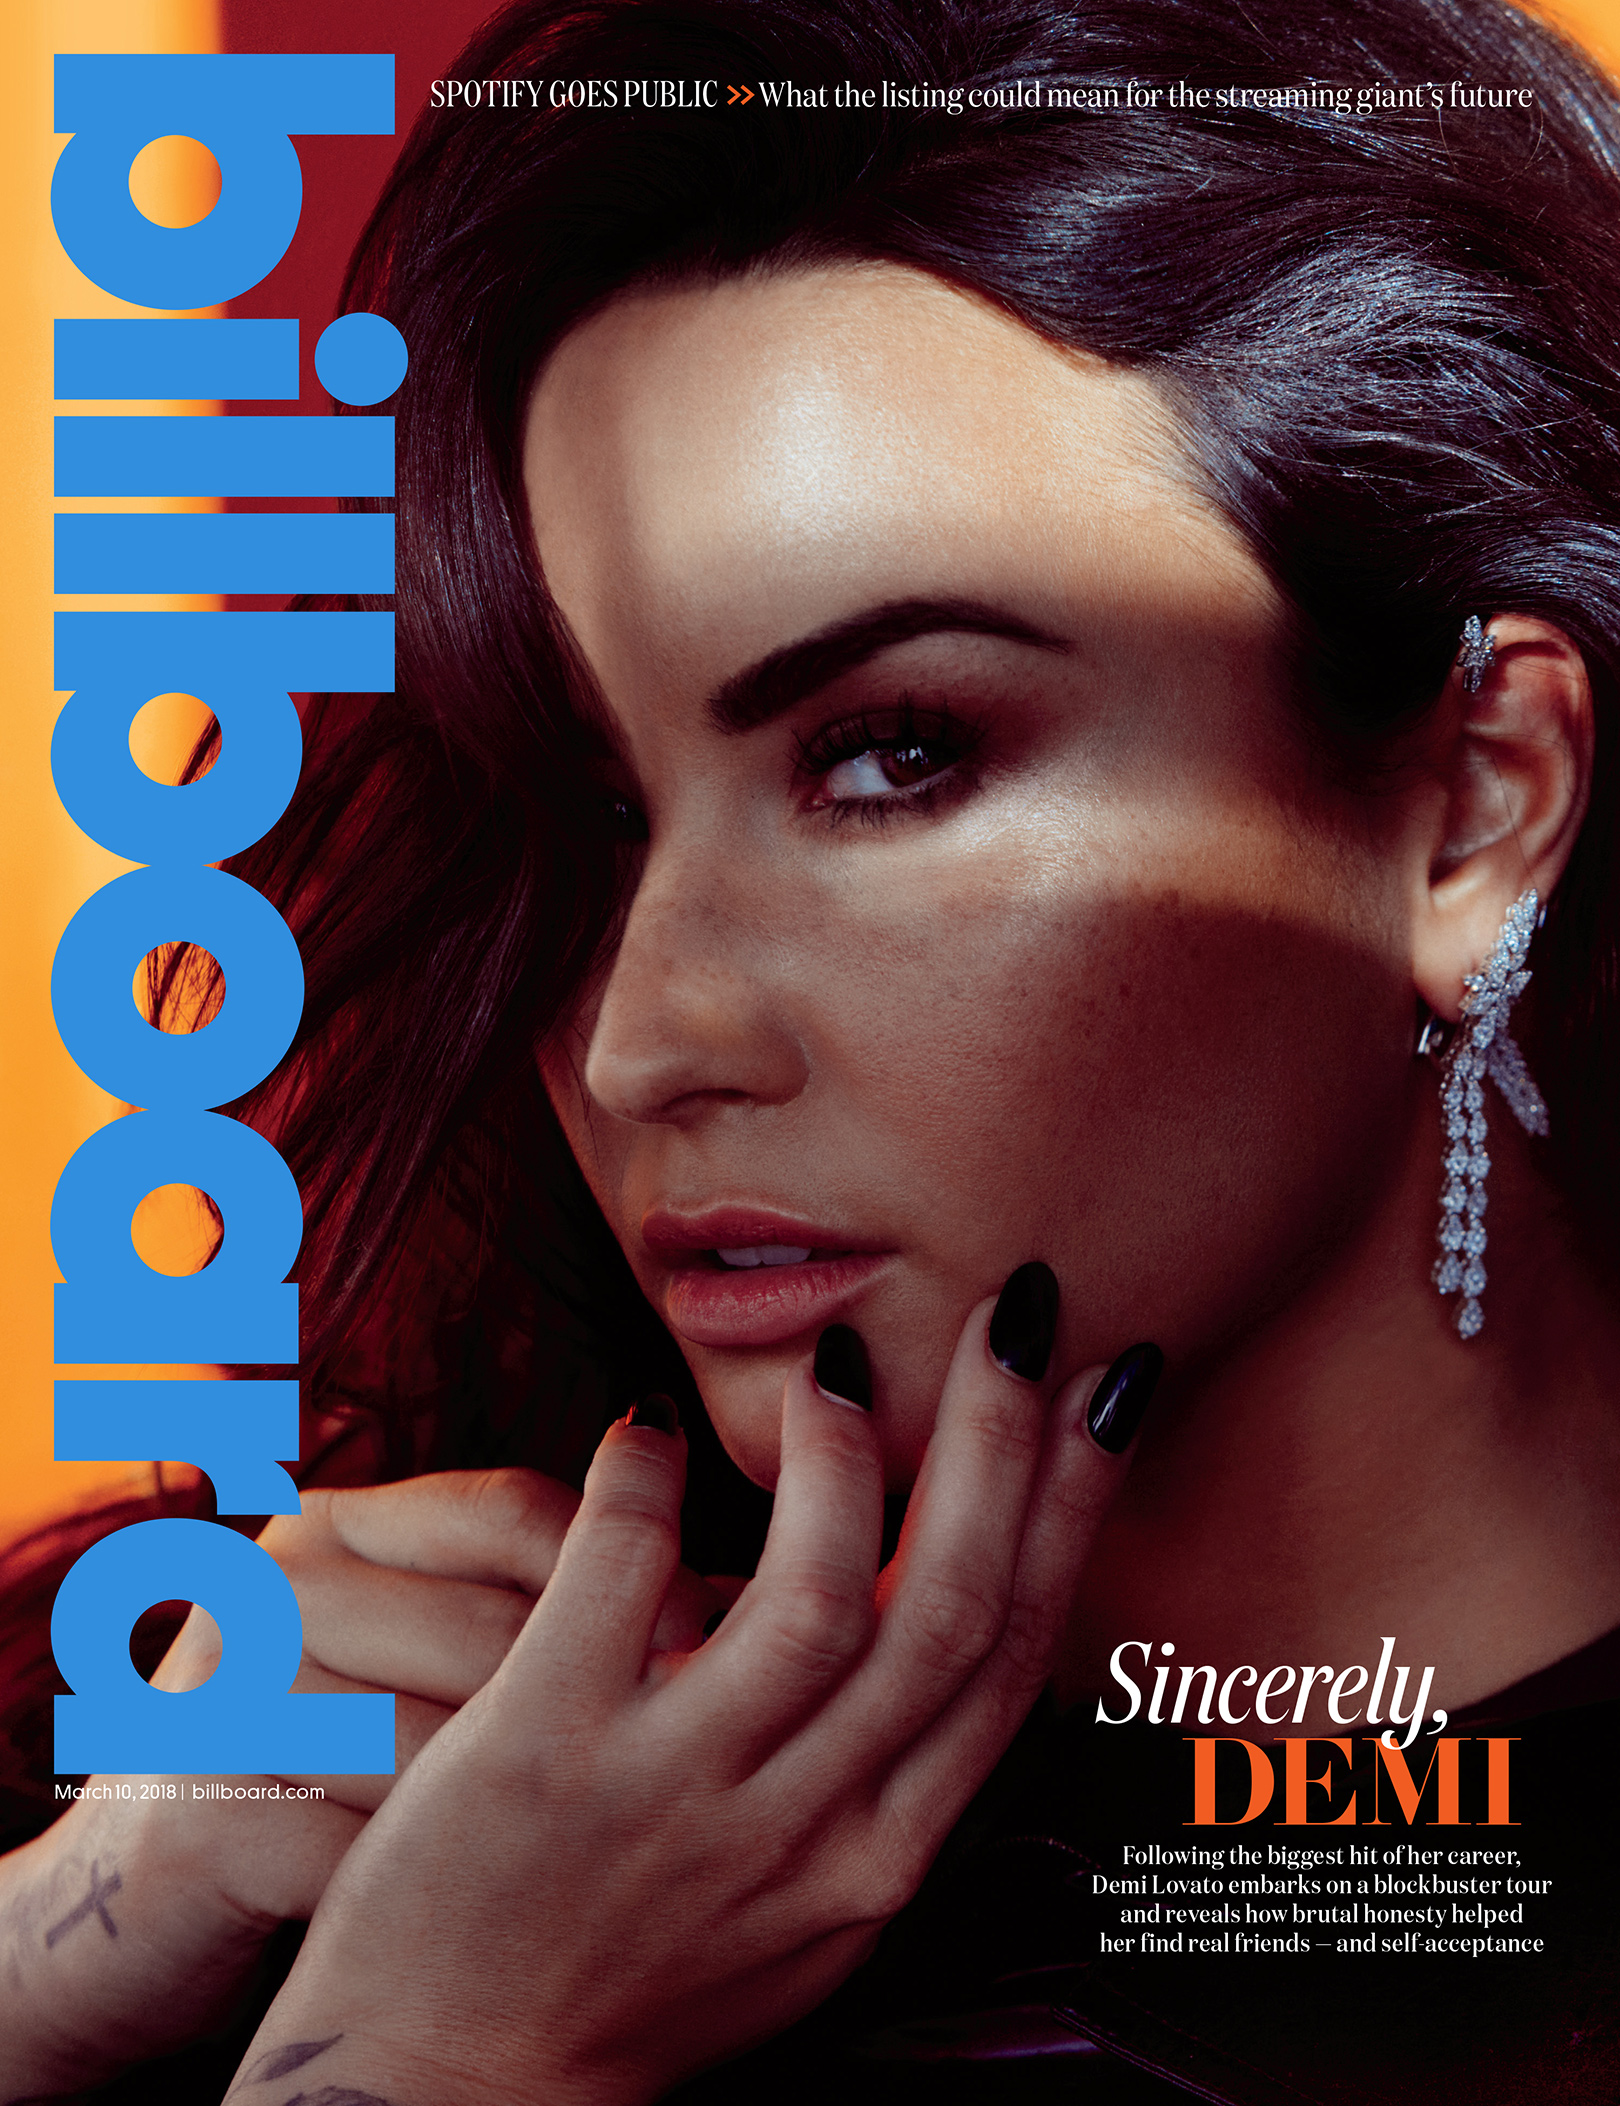 demi_lovato_billboard_cover_inset